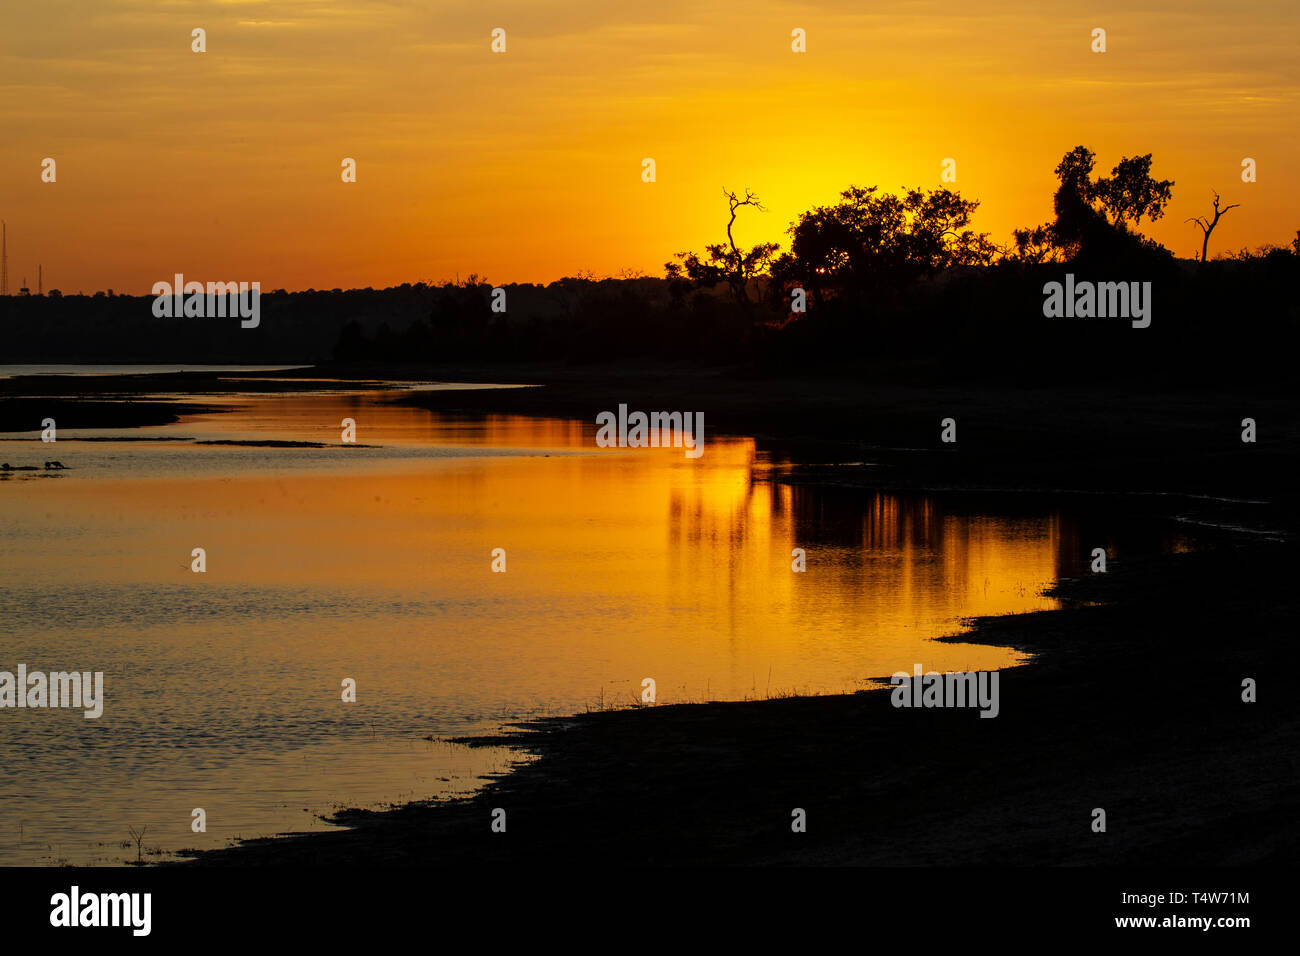 Sunset over the River Chobe on a summer evening in Botswana Stock Photo